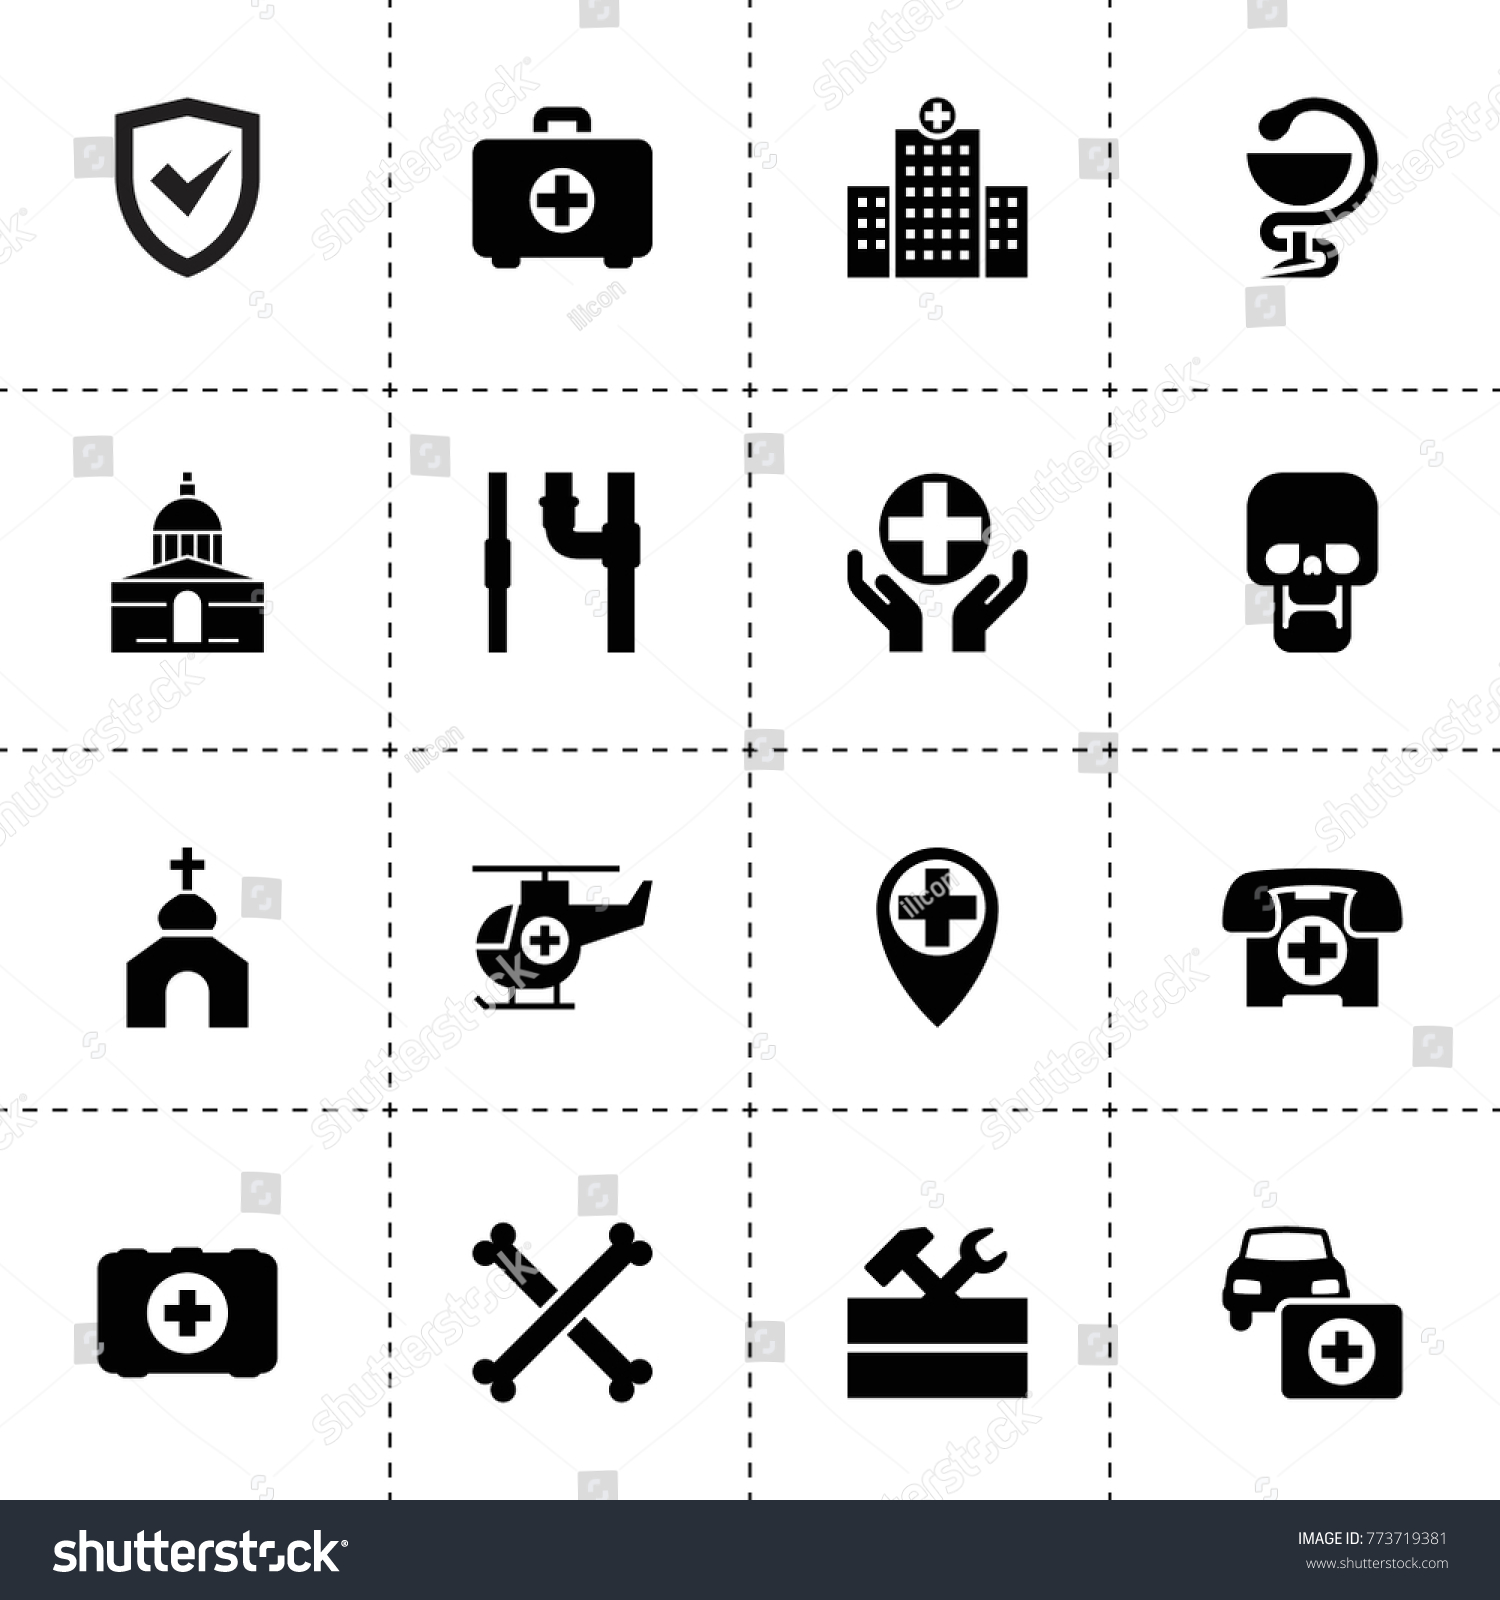 Cross Icons Vector Collection Filled Cross Stock Vector 773719381